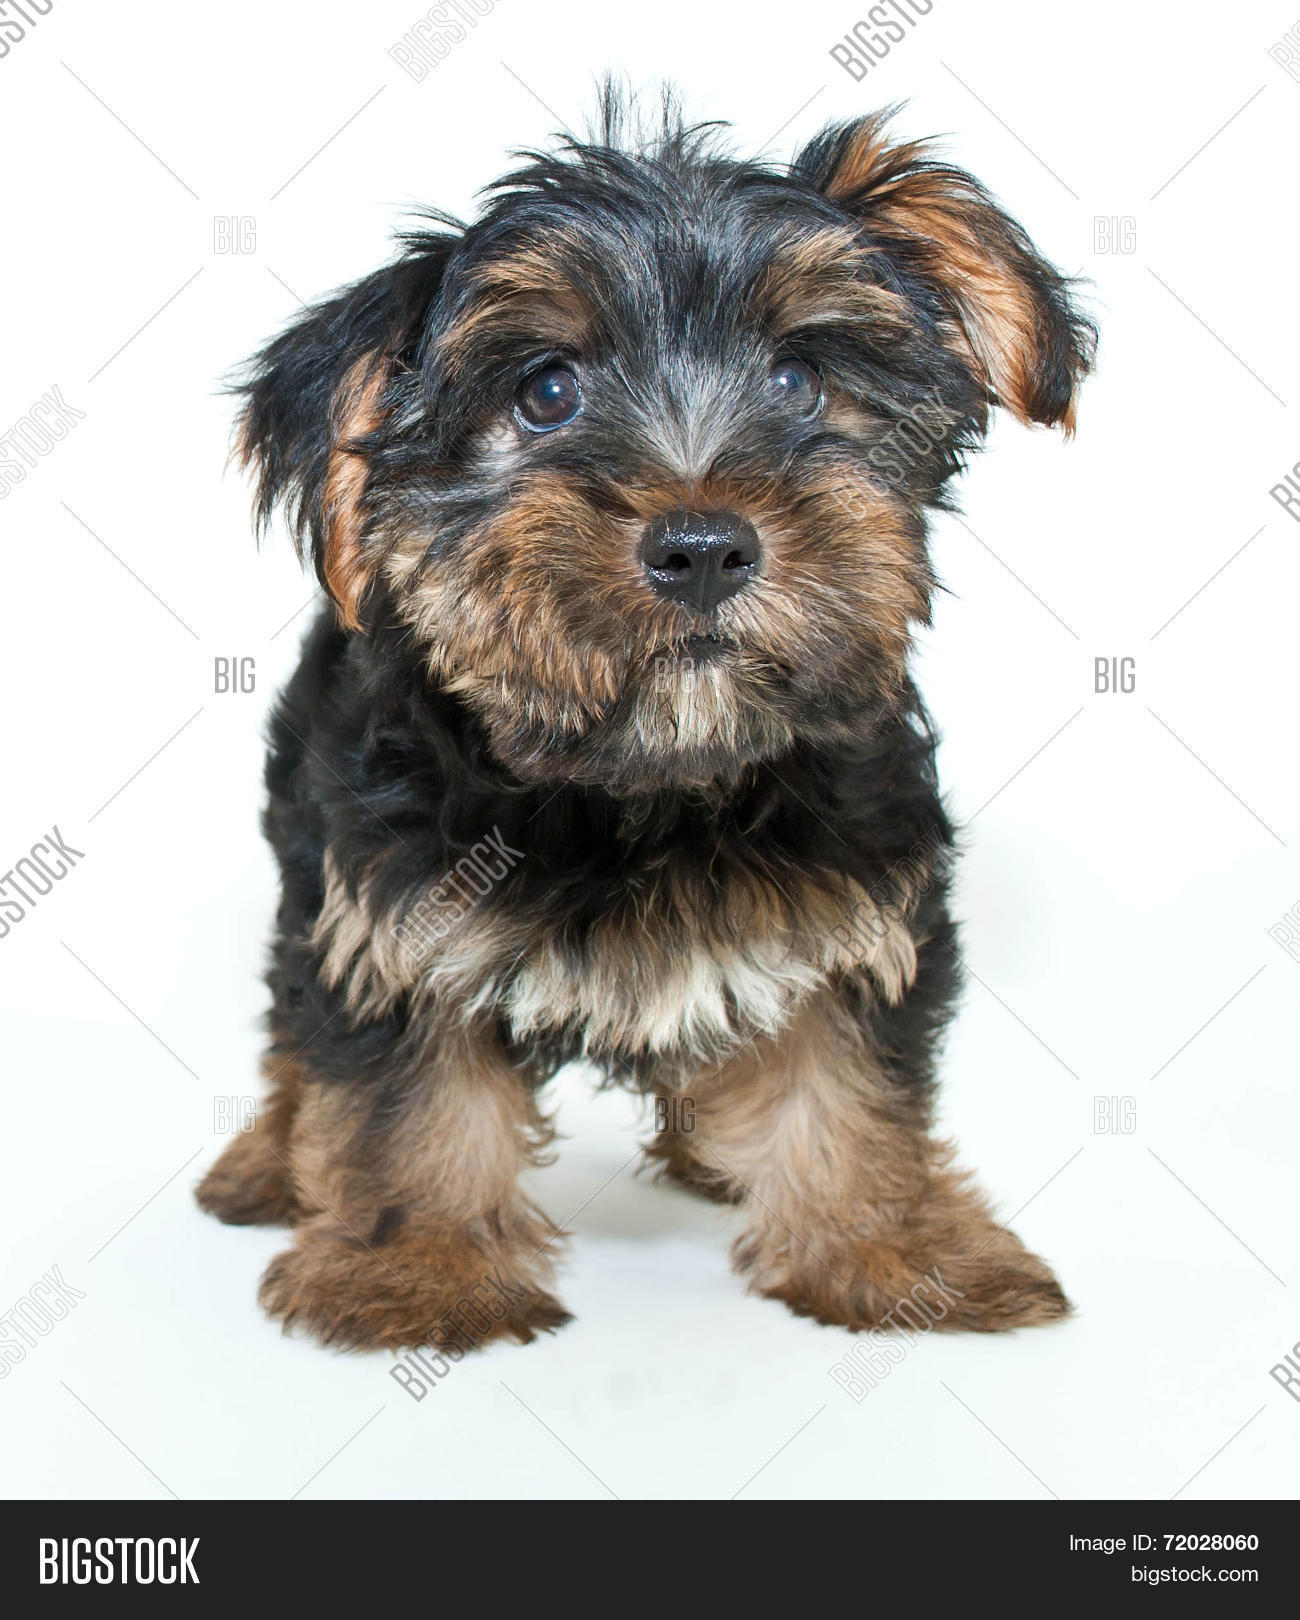 Yorkie Puppy Image Photo Free Trial